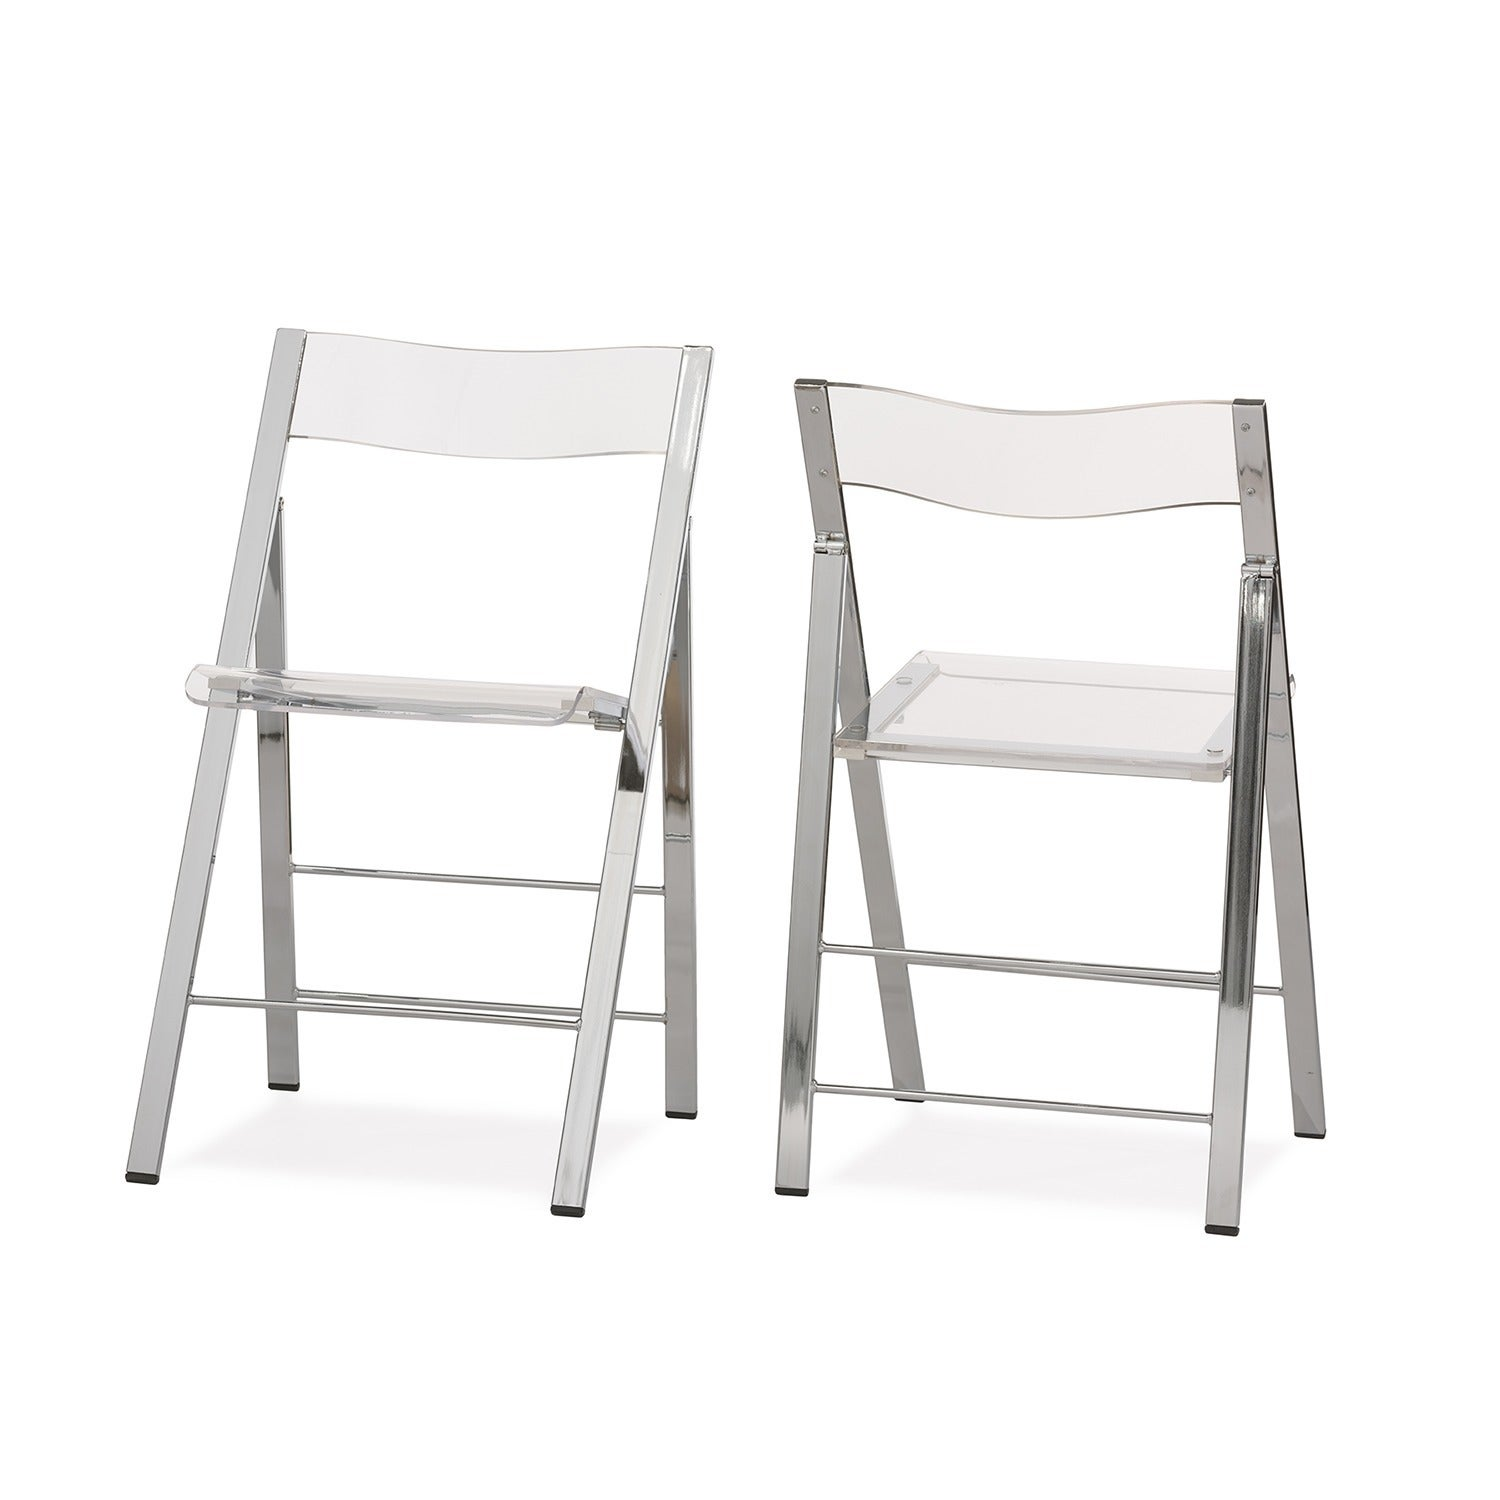 Acrylic Folding Chairs Set of 2 Free Shipping Today